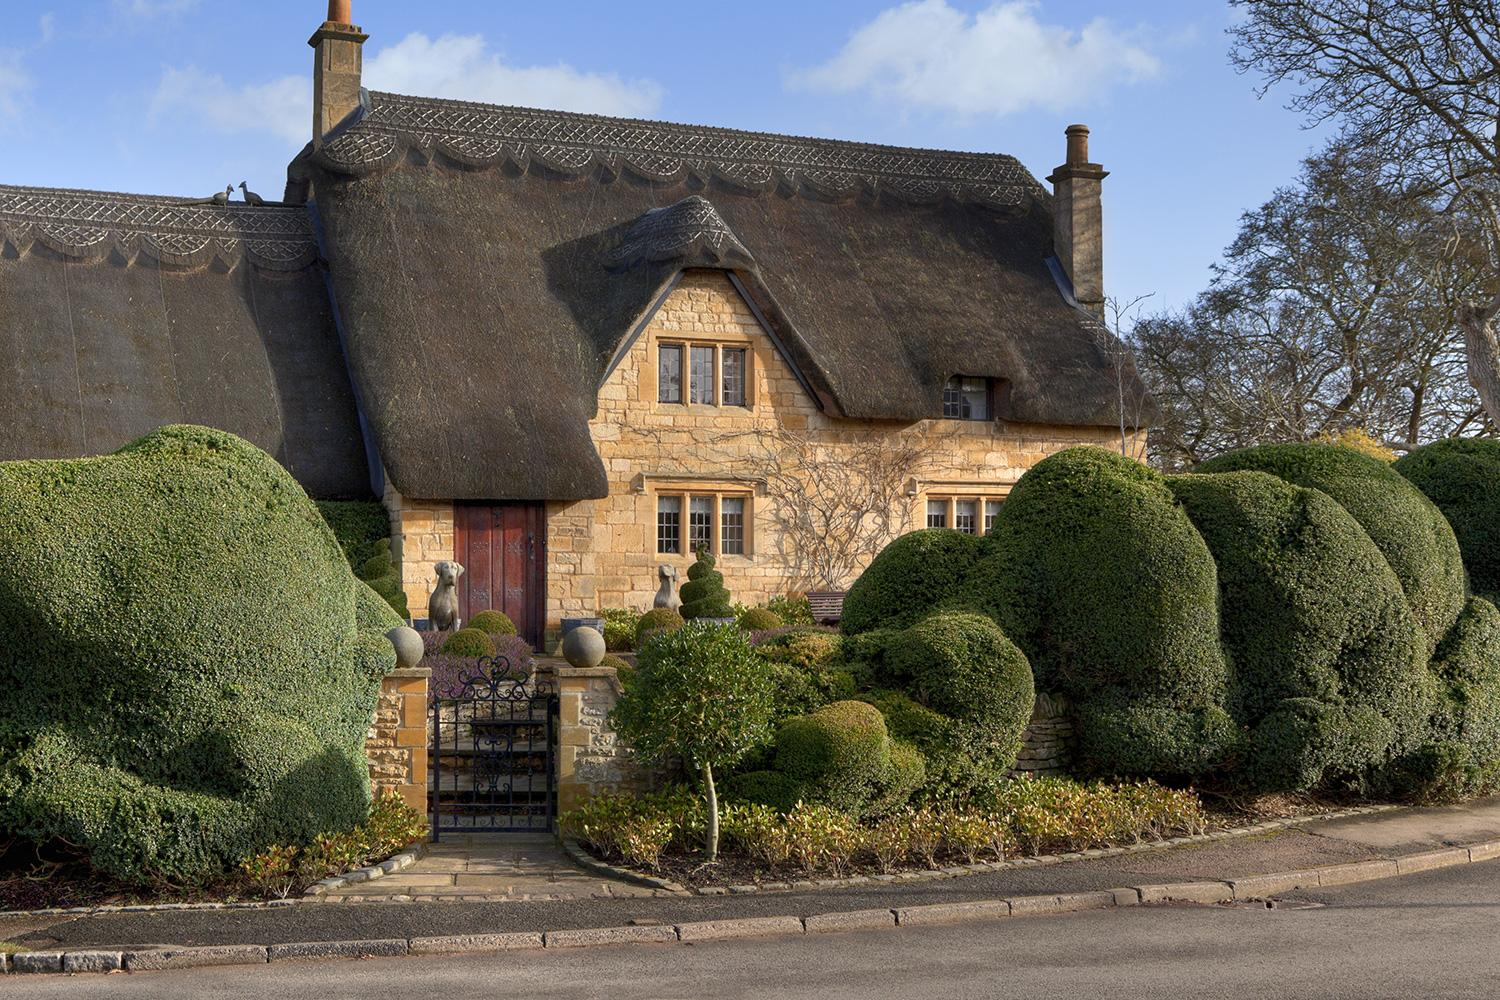 Typical thatched honey-coloured cottage